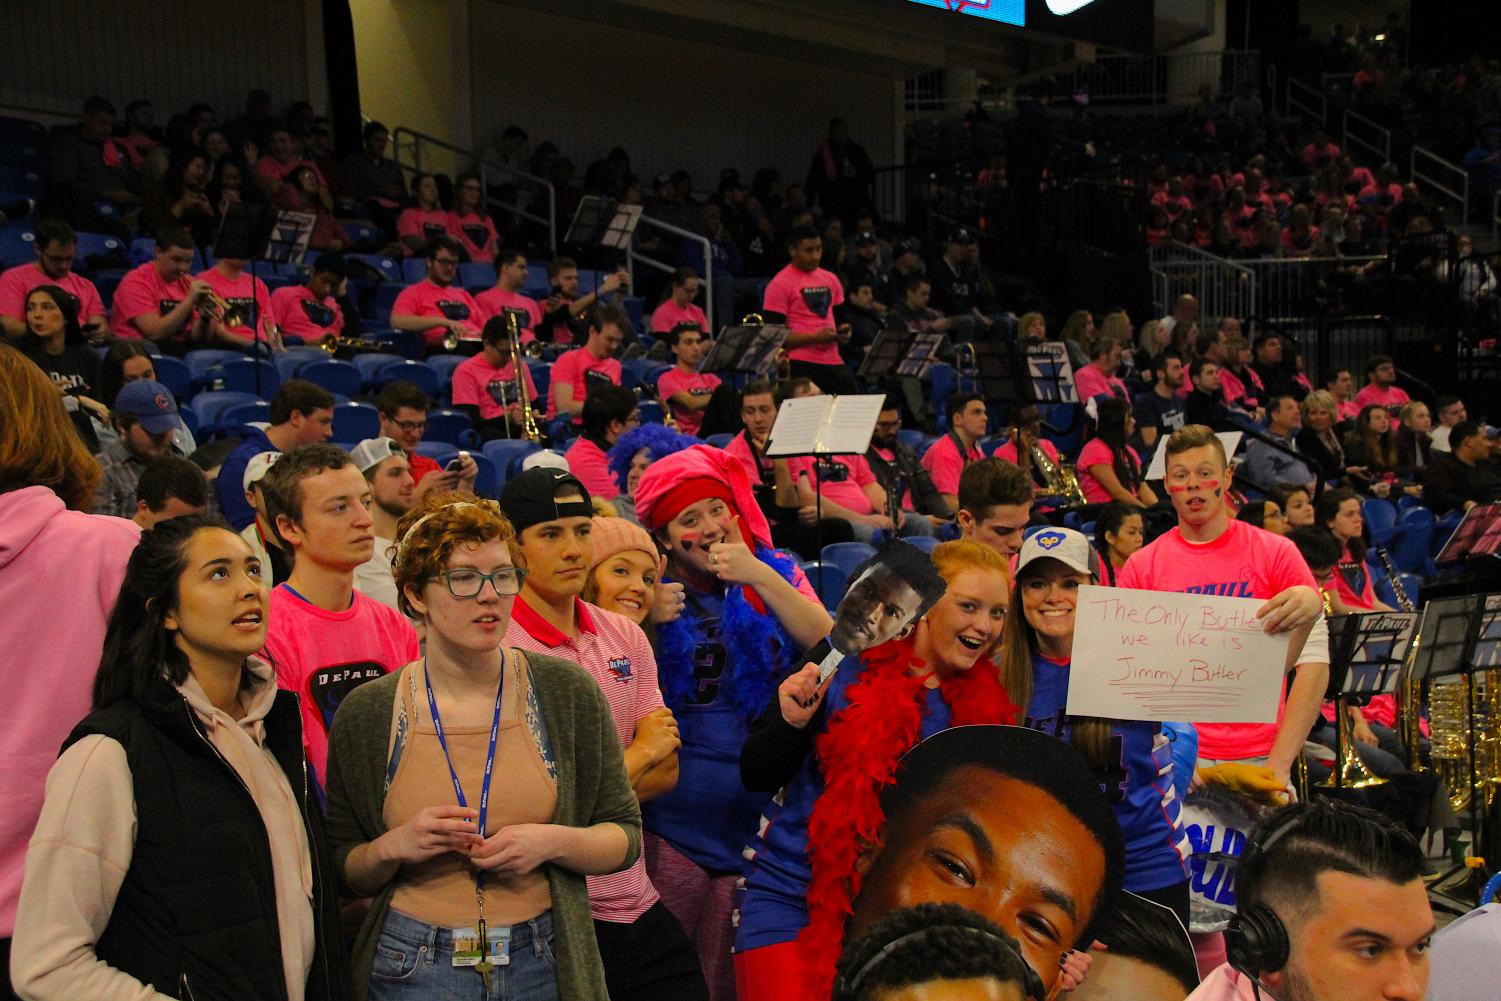 DePaul's student attendance has grown in the move to Wintrust, but growth relative to low attendance numbers at Allstate isn't going to fill the Demon Deck anytime soon.  (Richard Bodee   The DePaulia)